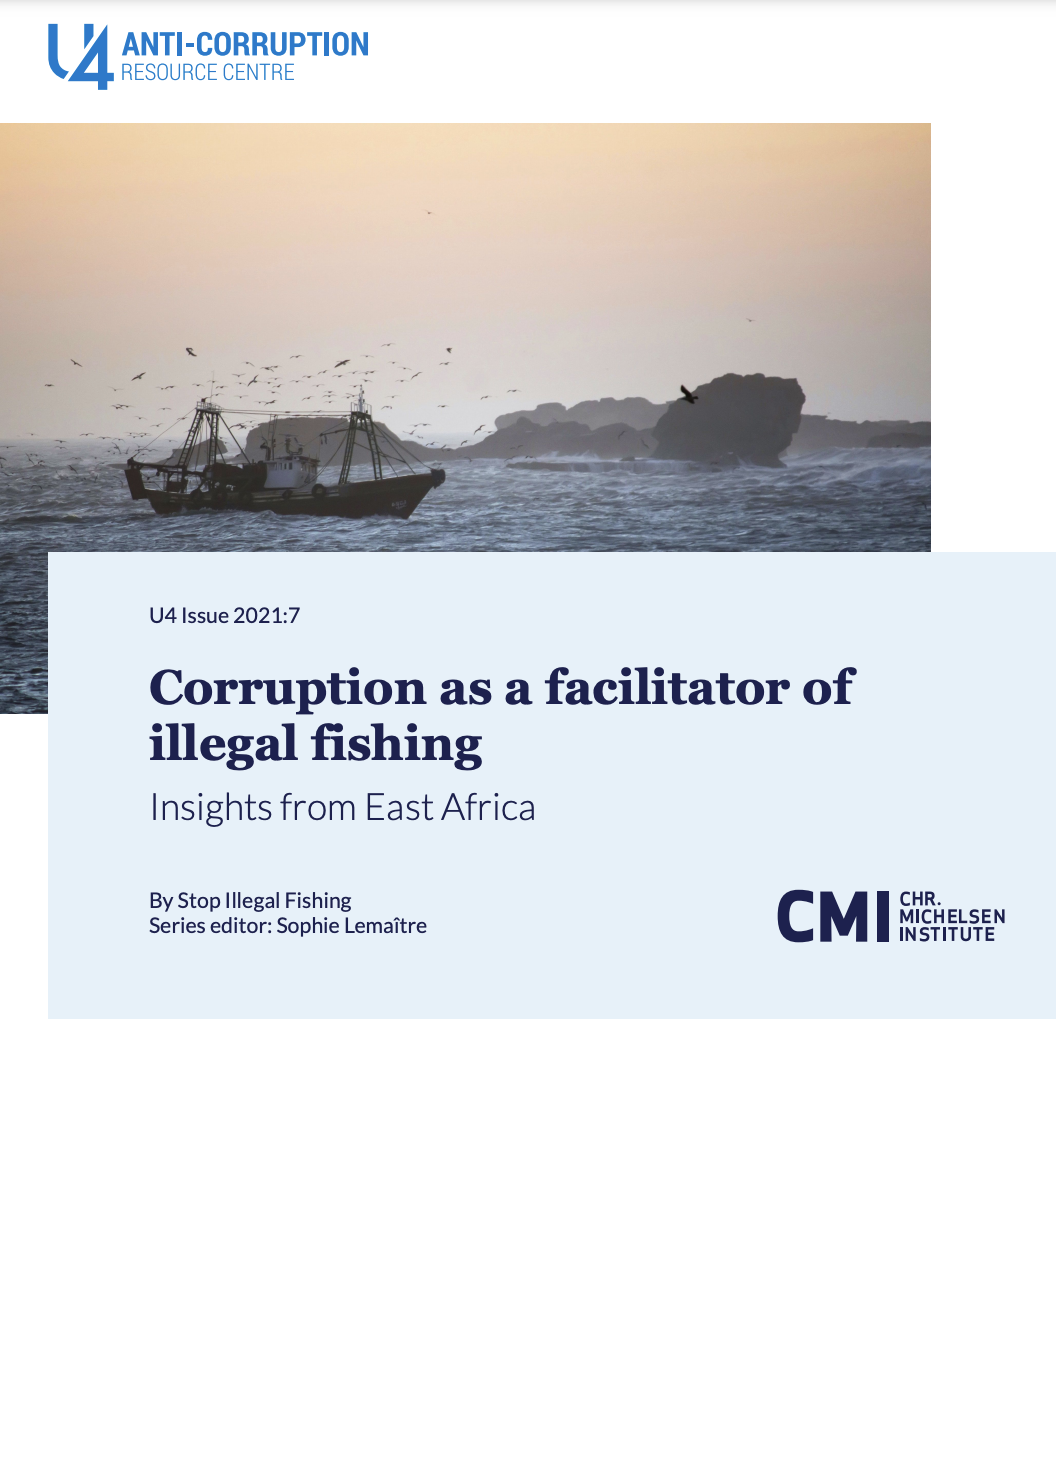 Corruption as a Facilitator of Illegal Fishing: Insights from East Africa